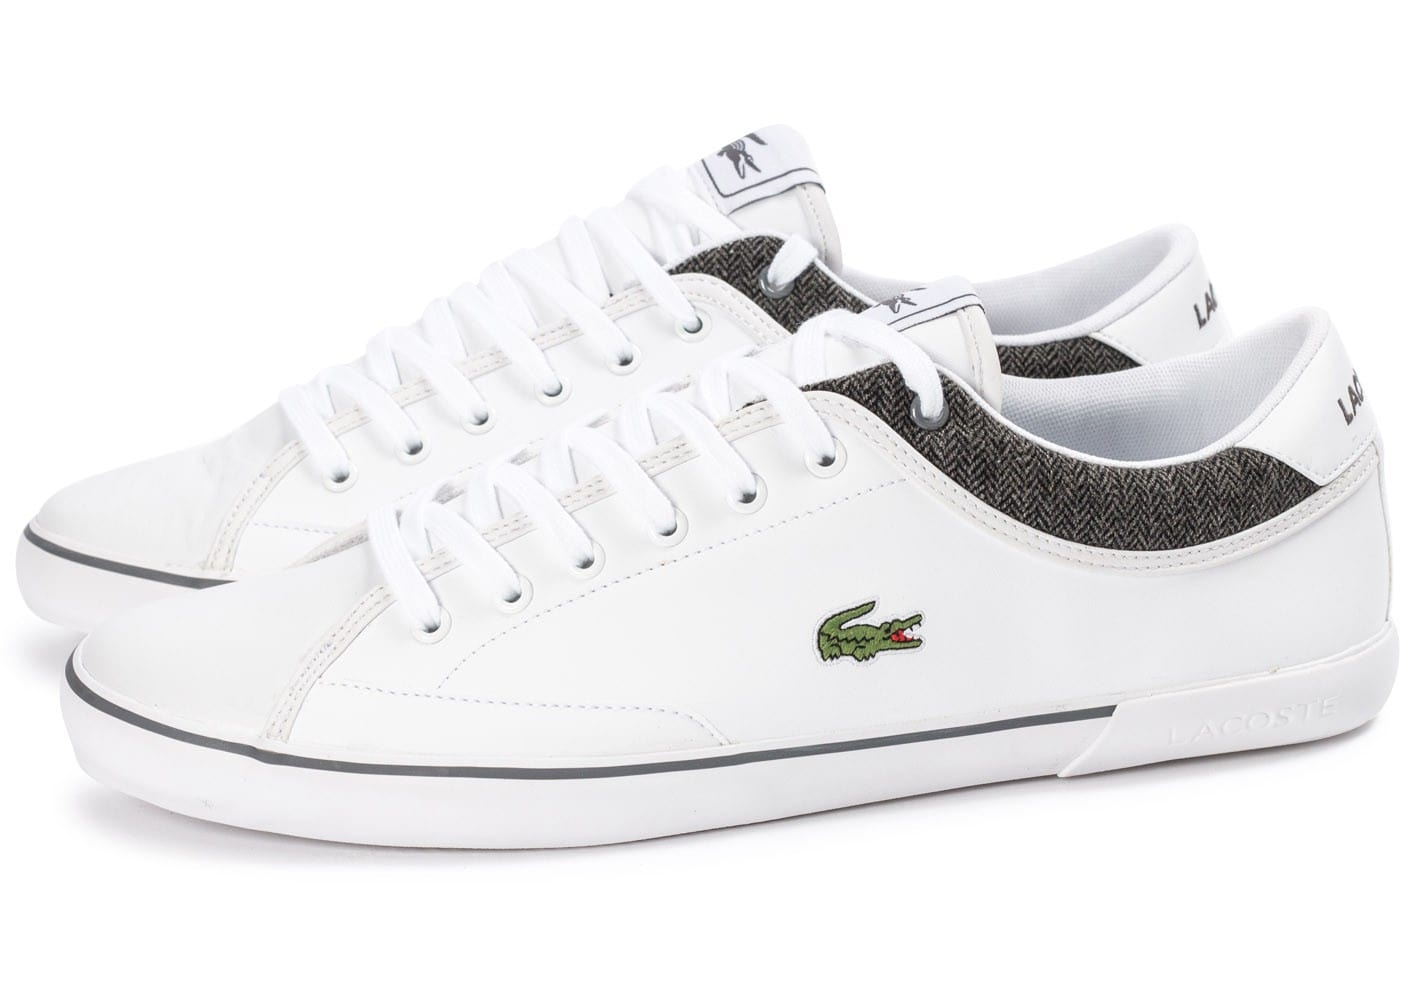 Chausport Angha Homme Blanche Lacoste Chaussures Baskets Cuir srCtxhQd